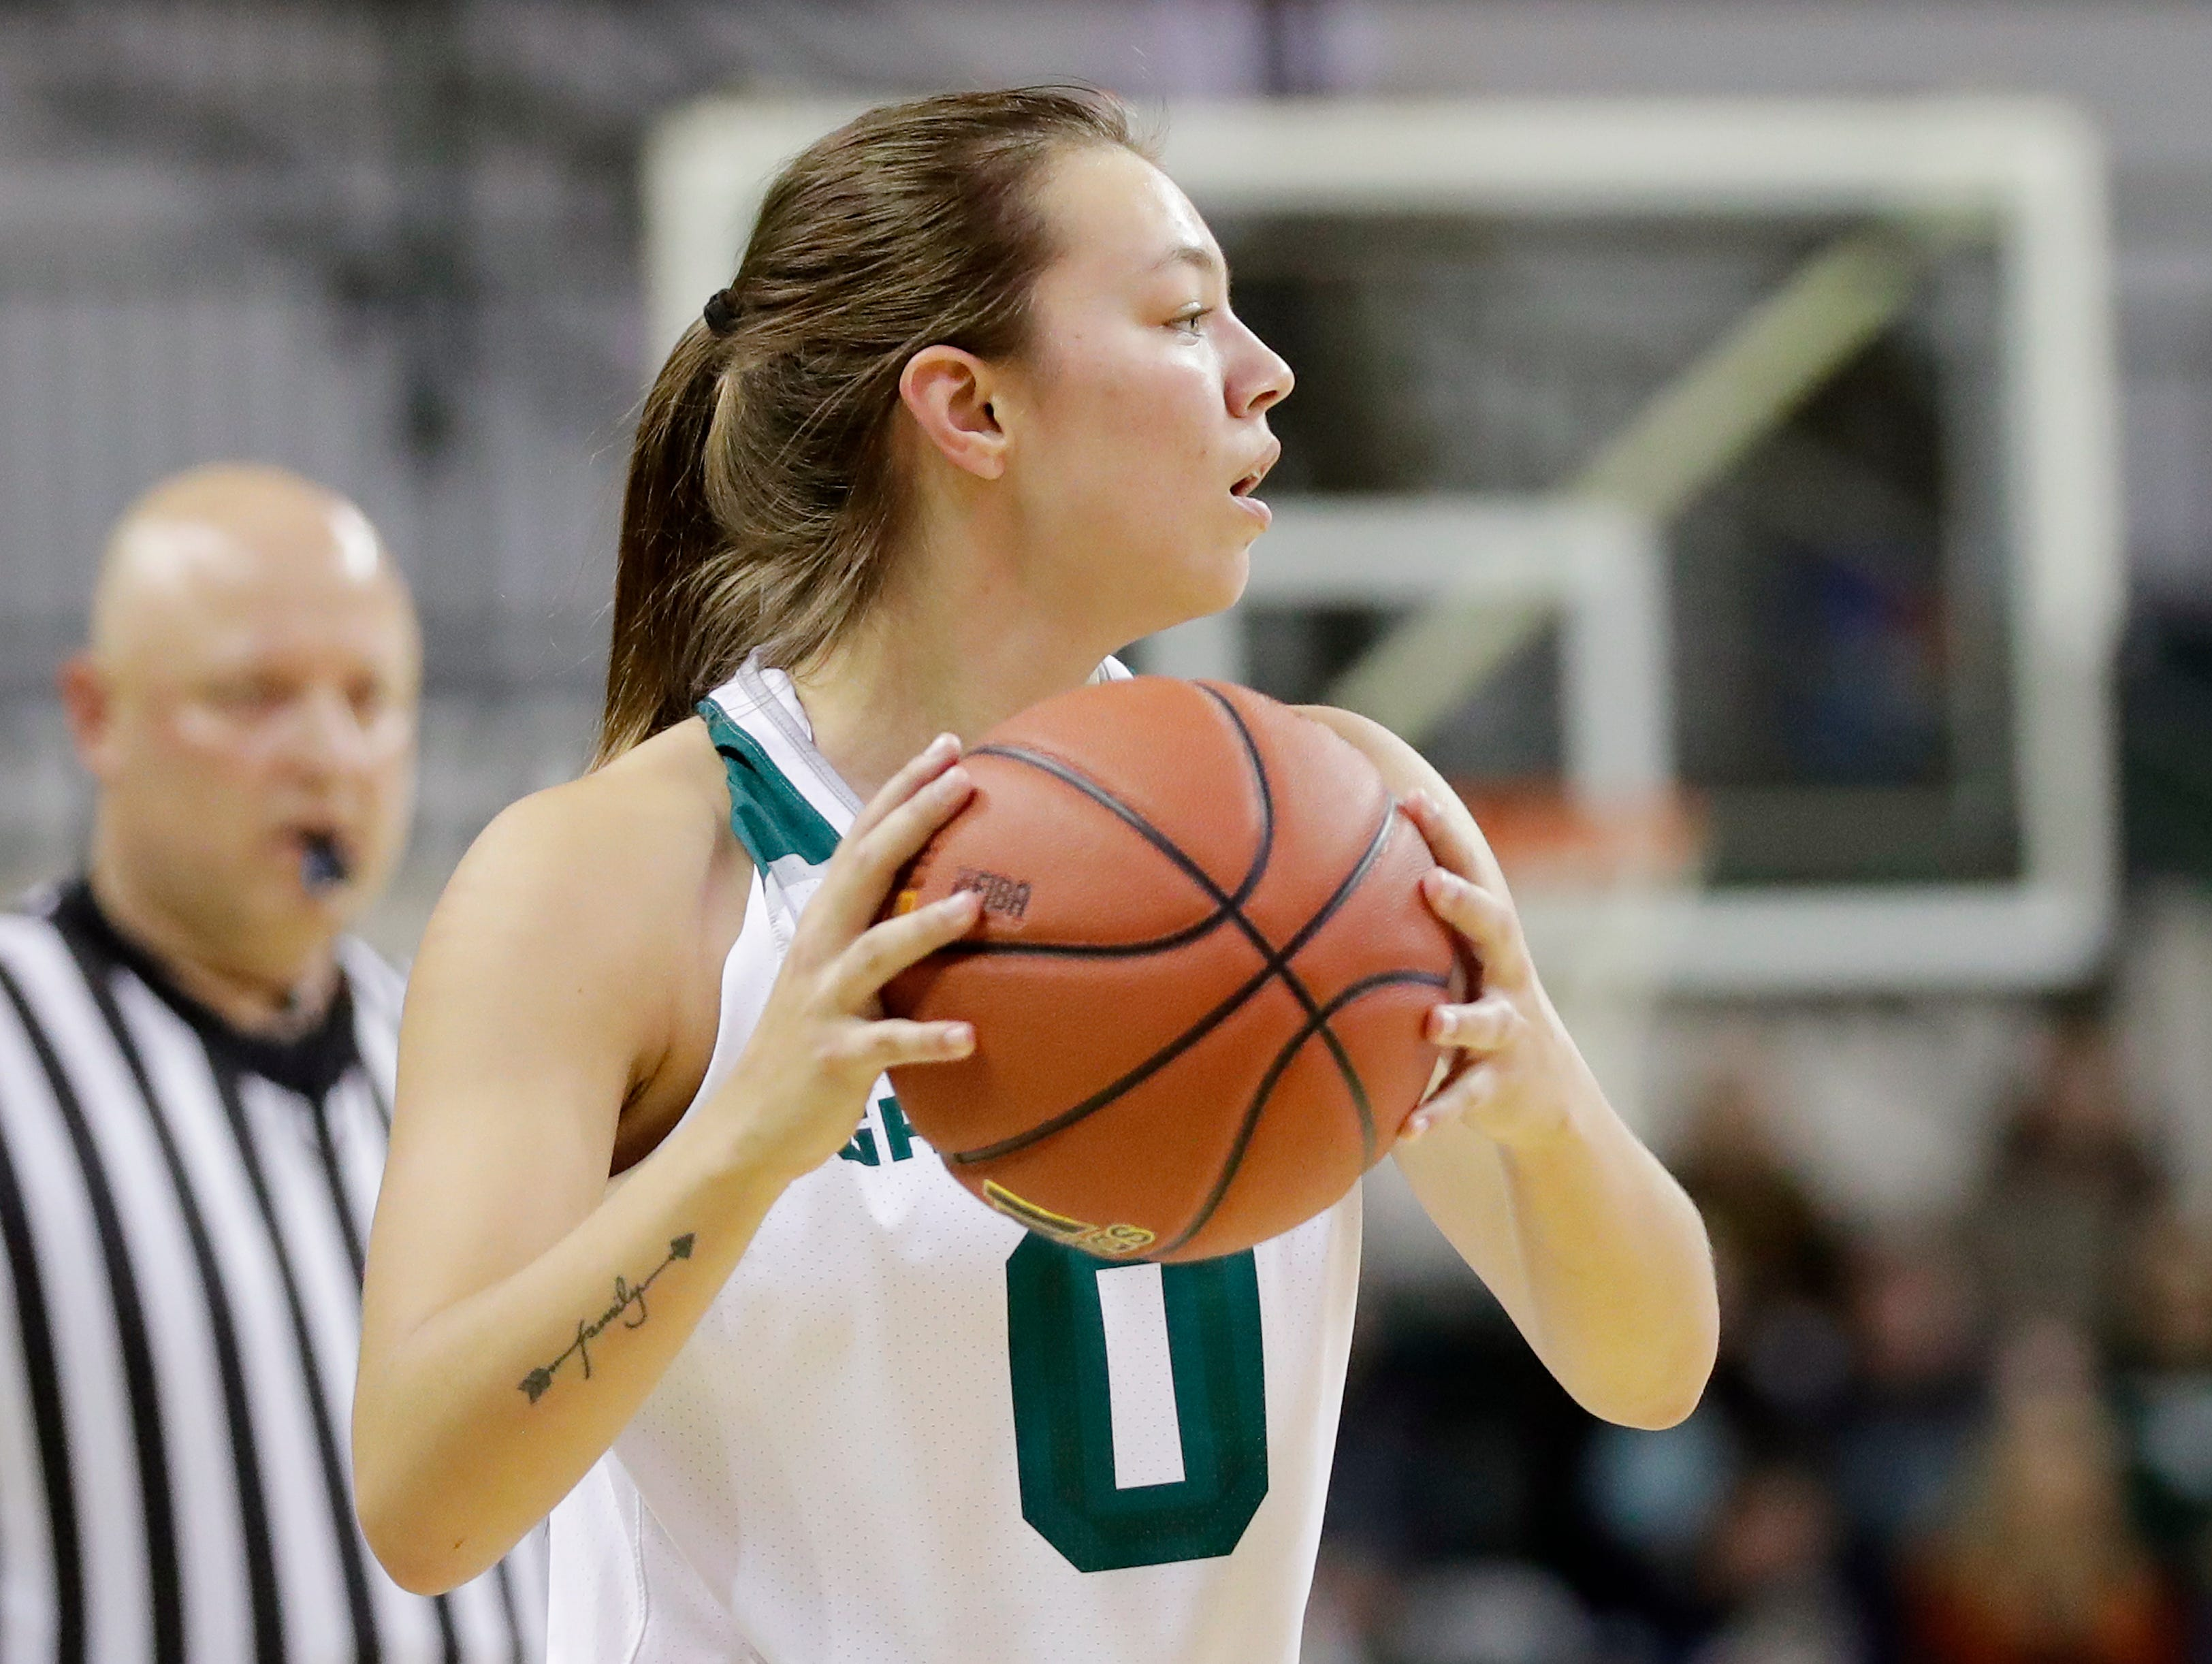 Green Bay Phoenix guard Hailey Oskey (0) brings the ball down the court against the Northwestern Wildcats in a women's NCAA basketball game at the Kress Center on Tuesday, November 6, 2018 in Green Bay, Wis.